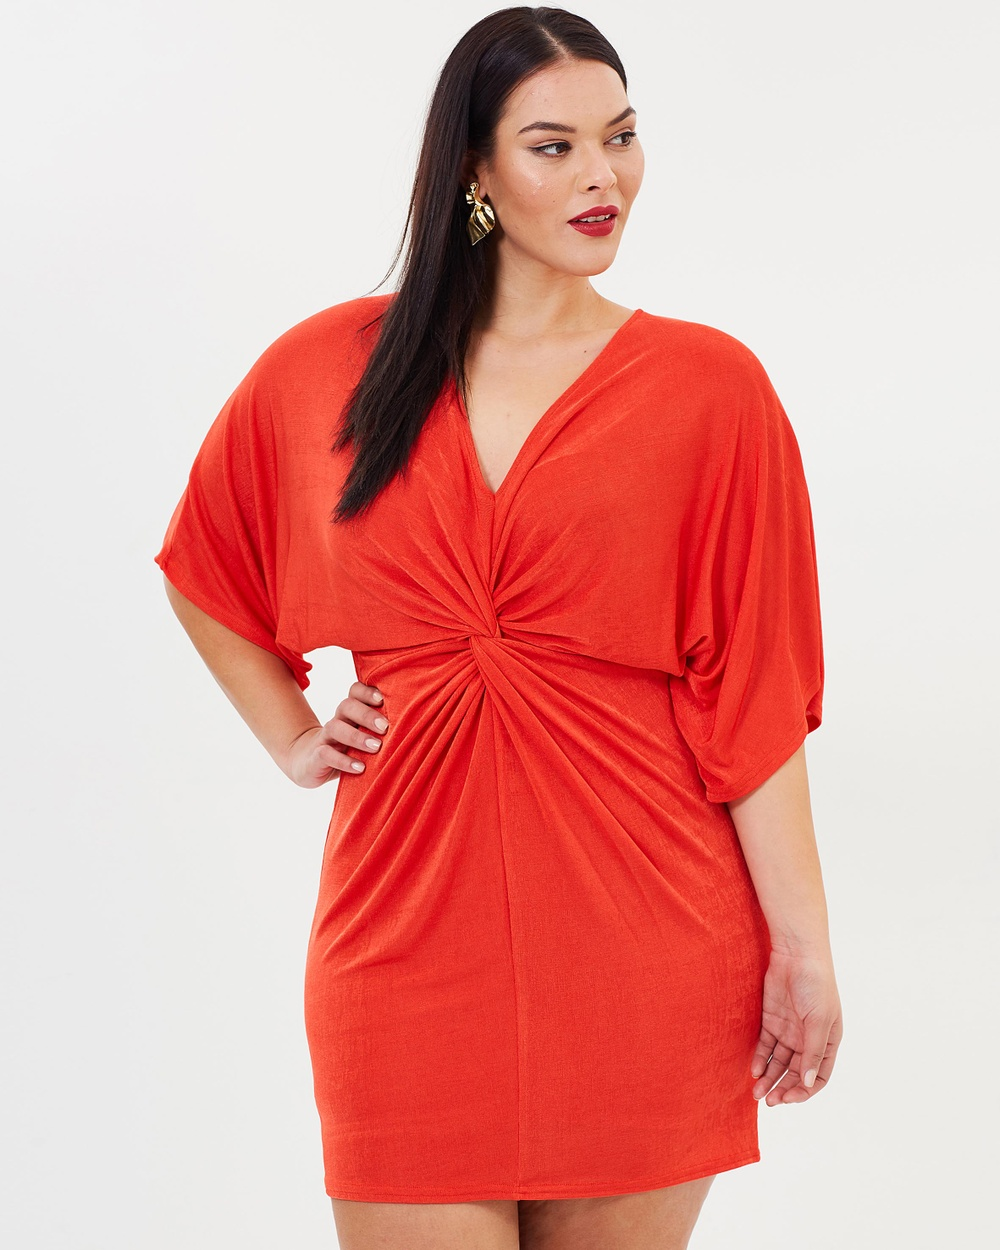 Missguided Curve Slinky Kimono Dress Dresses Orange Slinky Kimono Dress